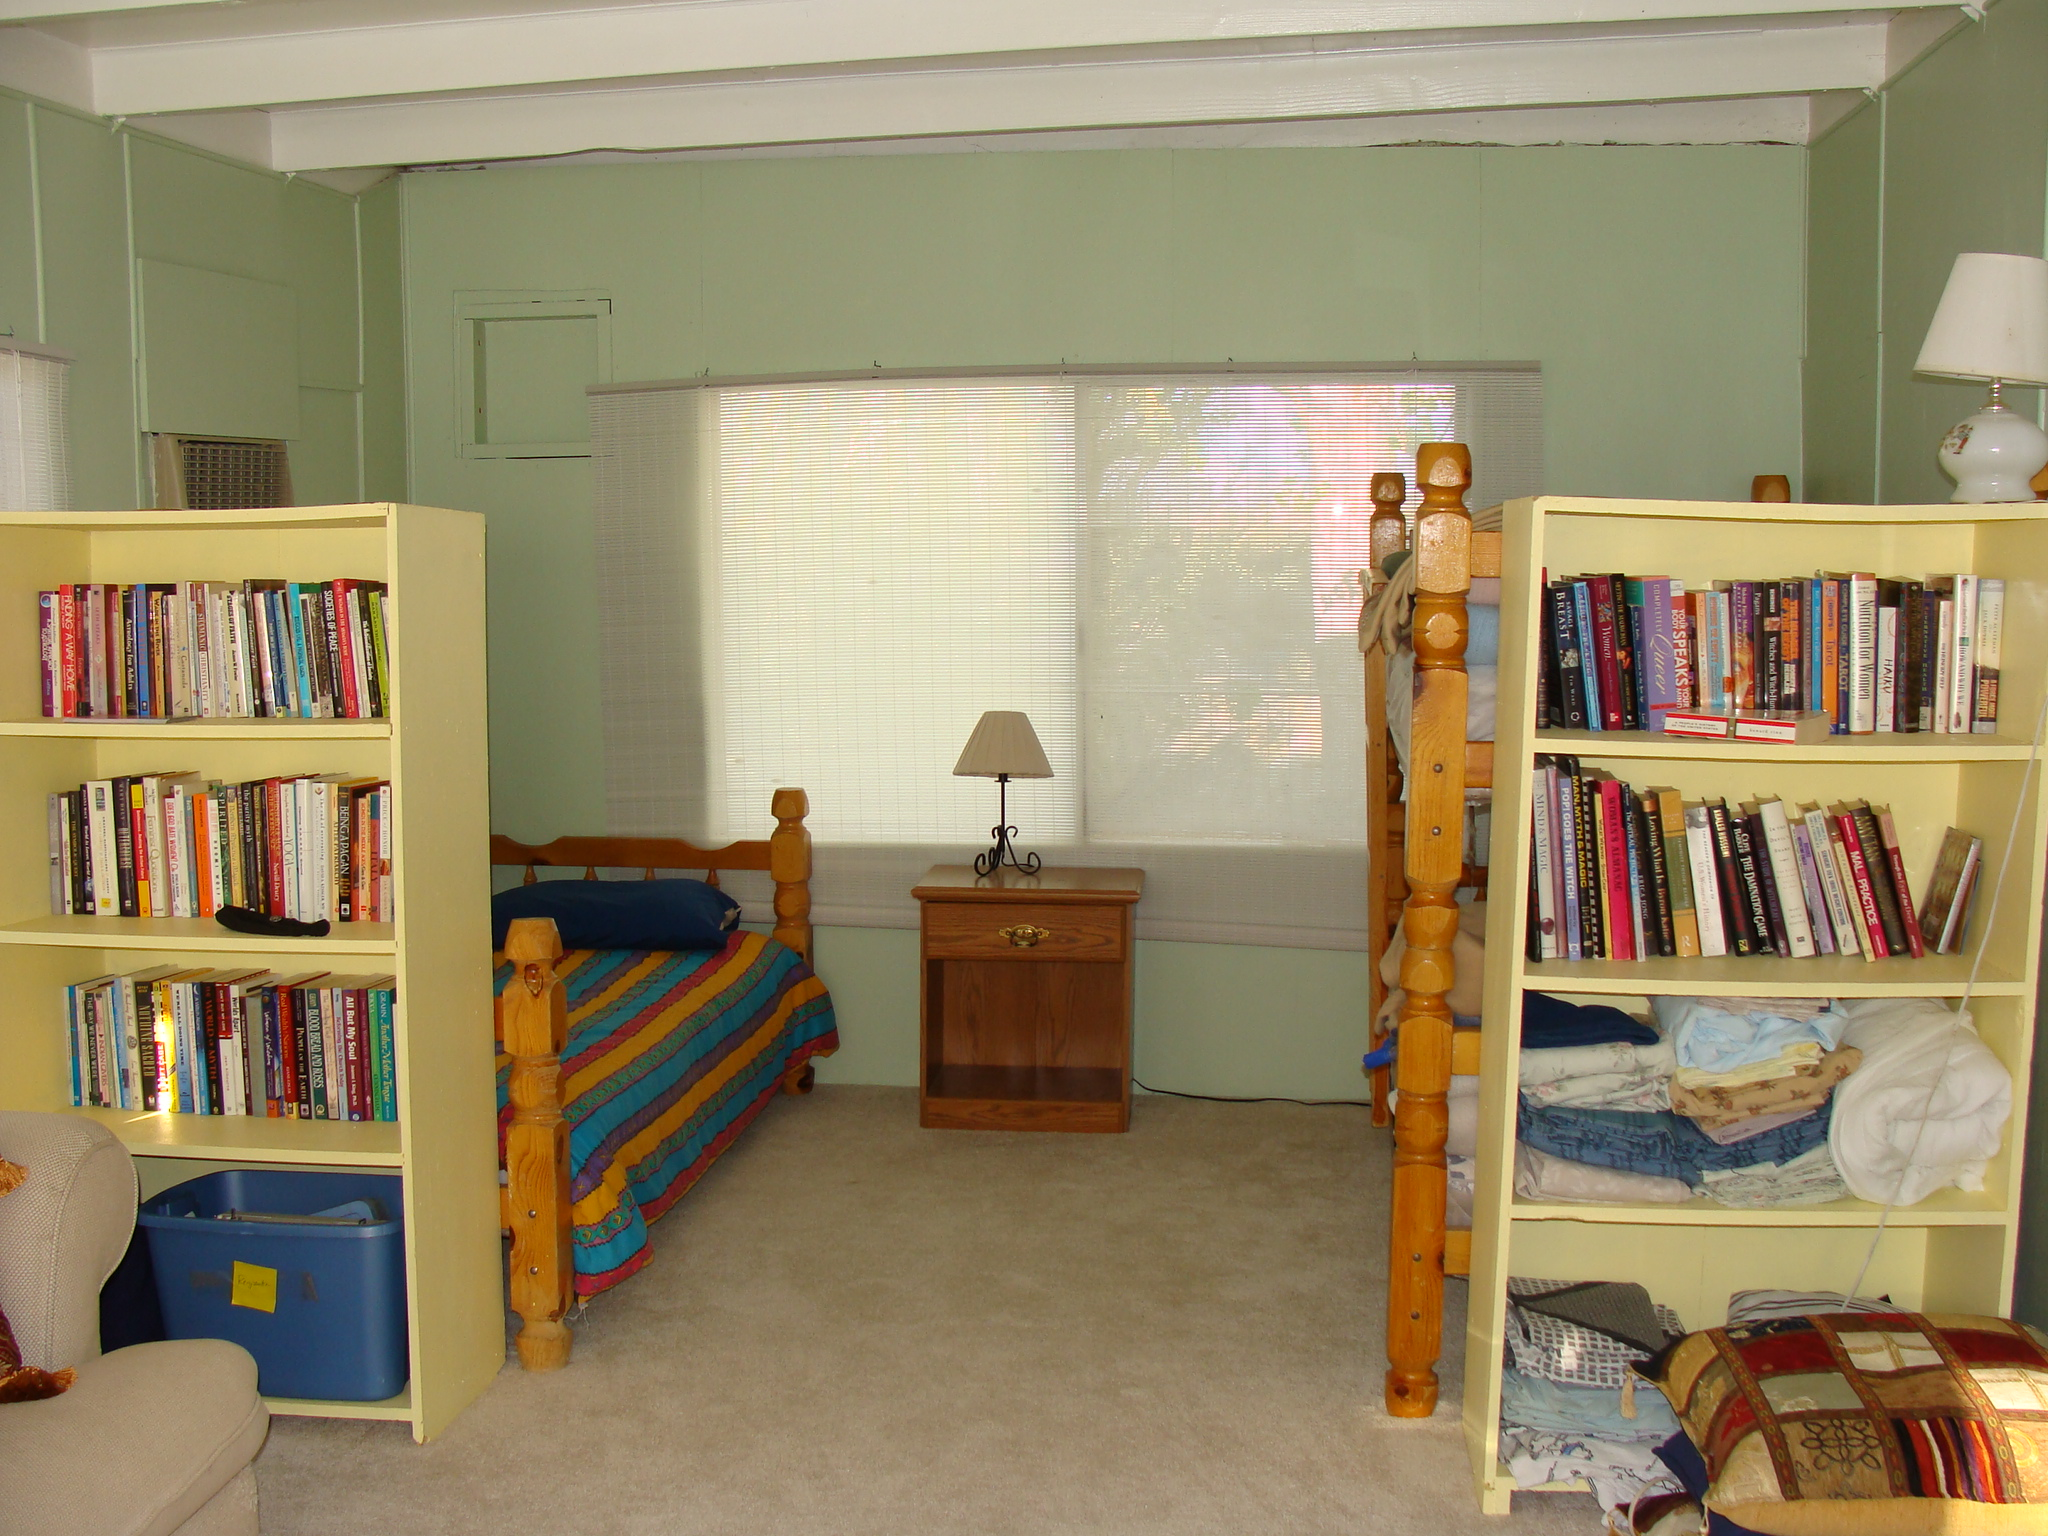 The Maiden Room also has two single beds and two bunk beds